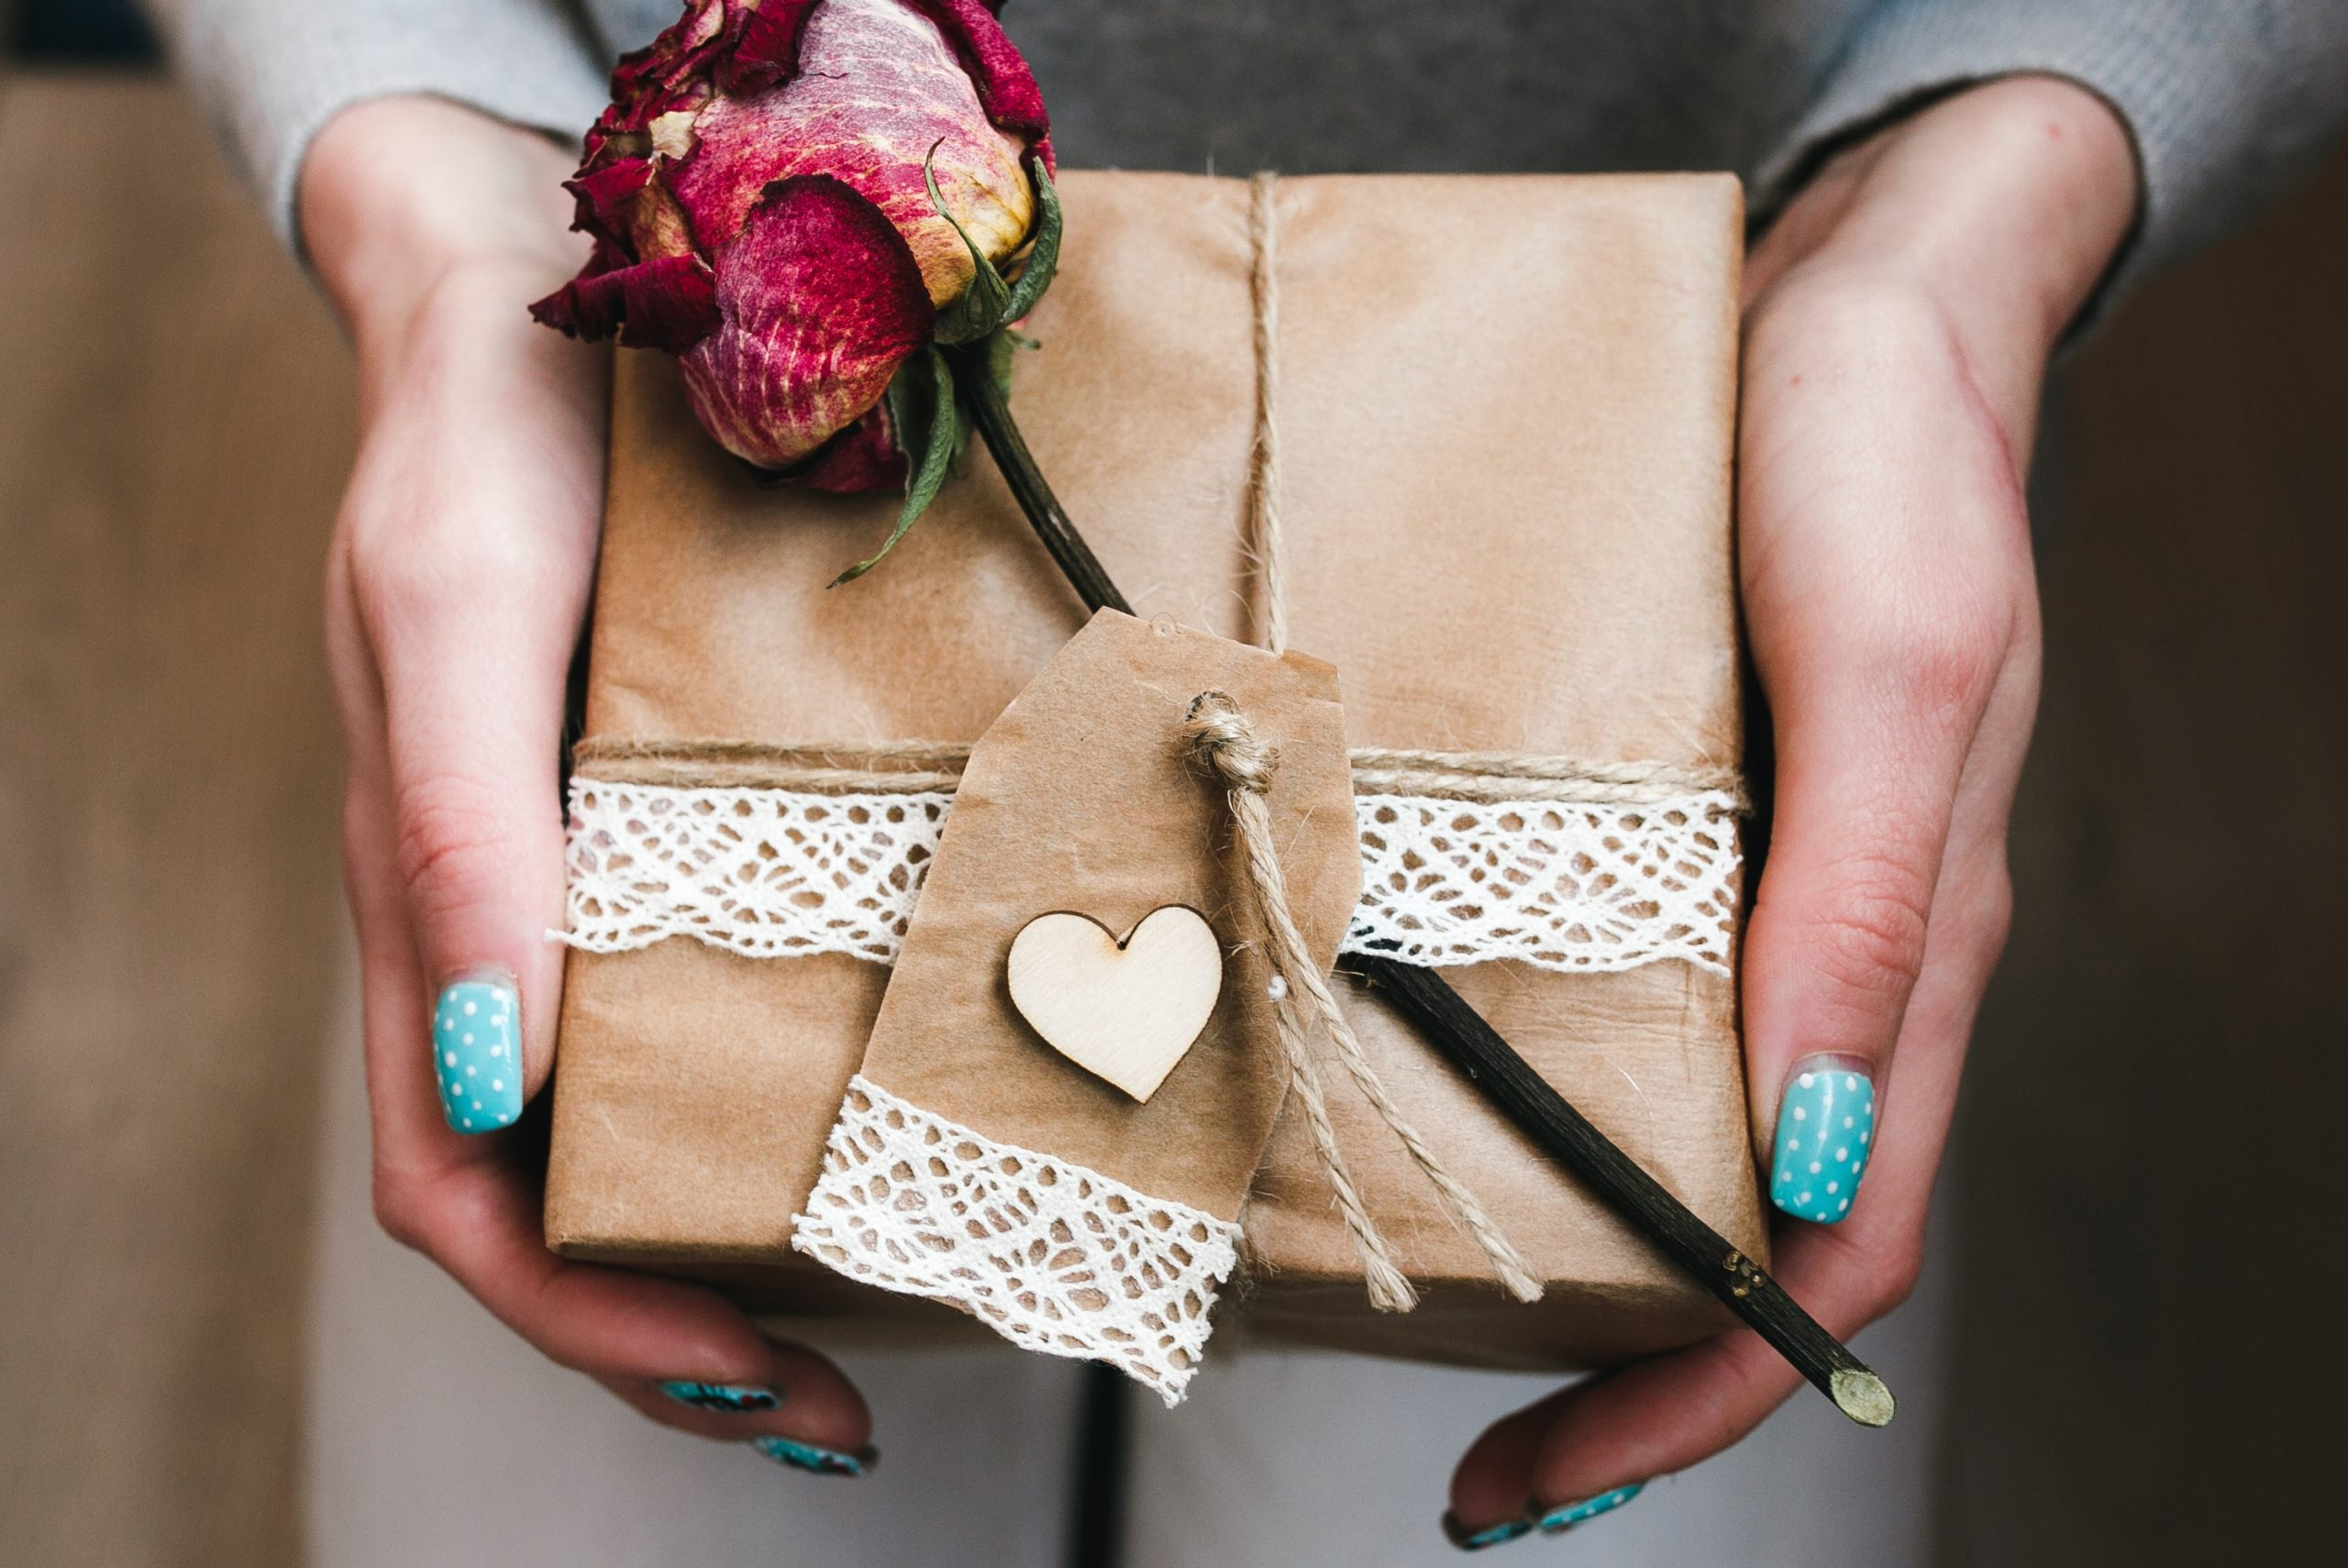 woman-holding-wrapped-gift-with-rose-brown-wrapper